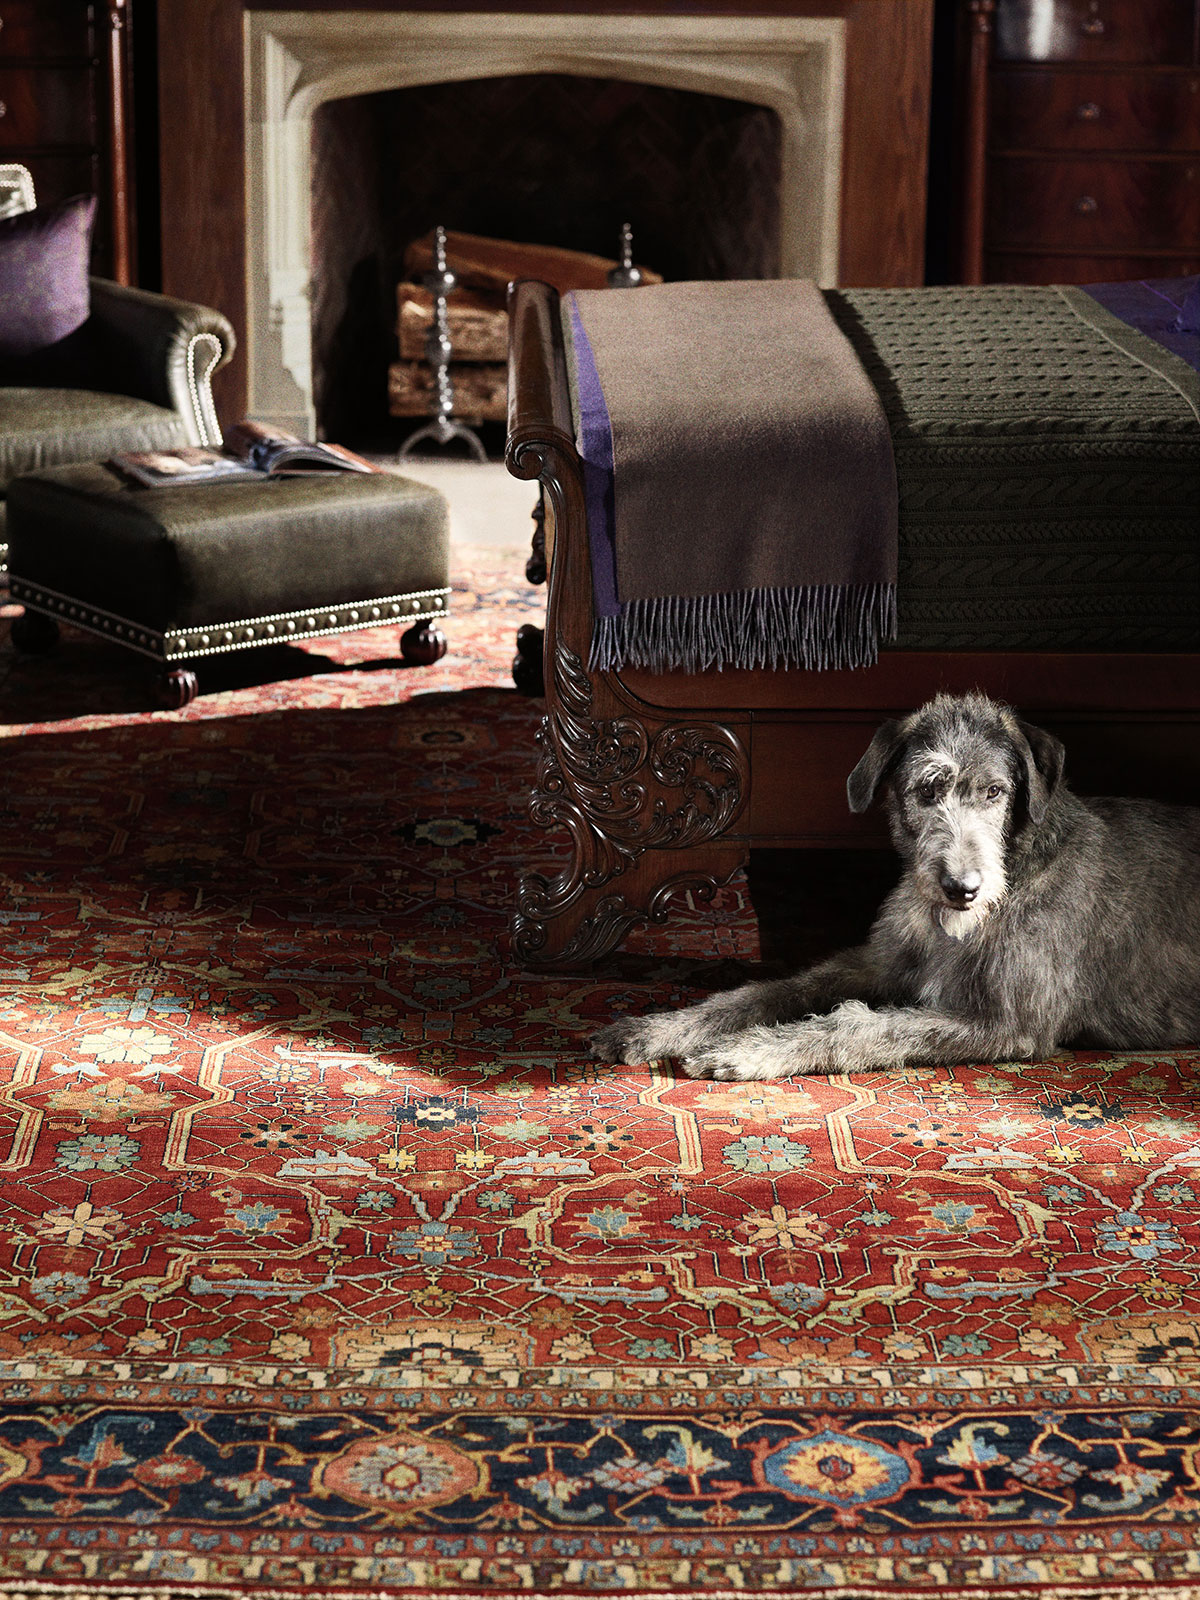 Ralph lauren rugs safavieh designer rugs - Deluxe persian living room designs with artistic rug collection ...